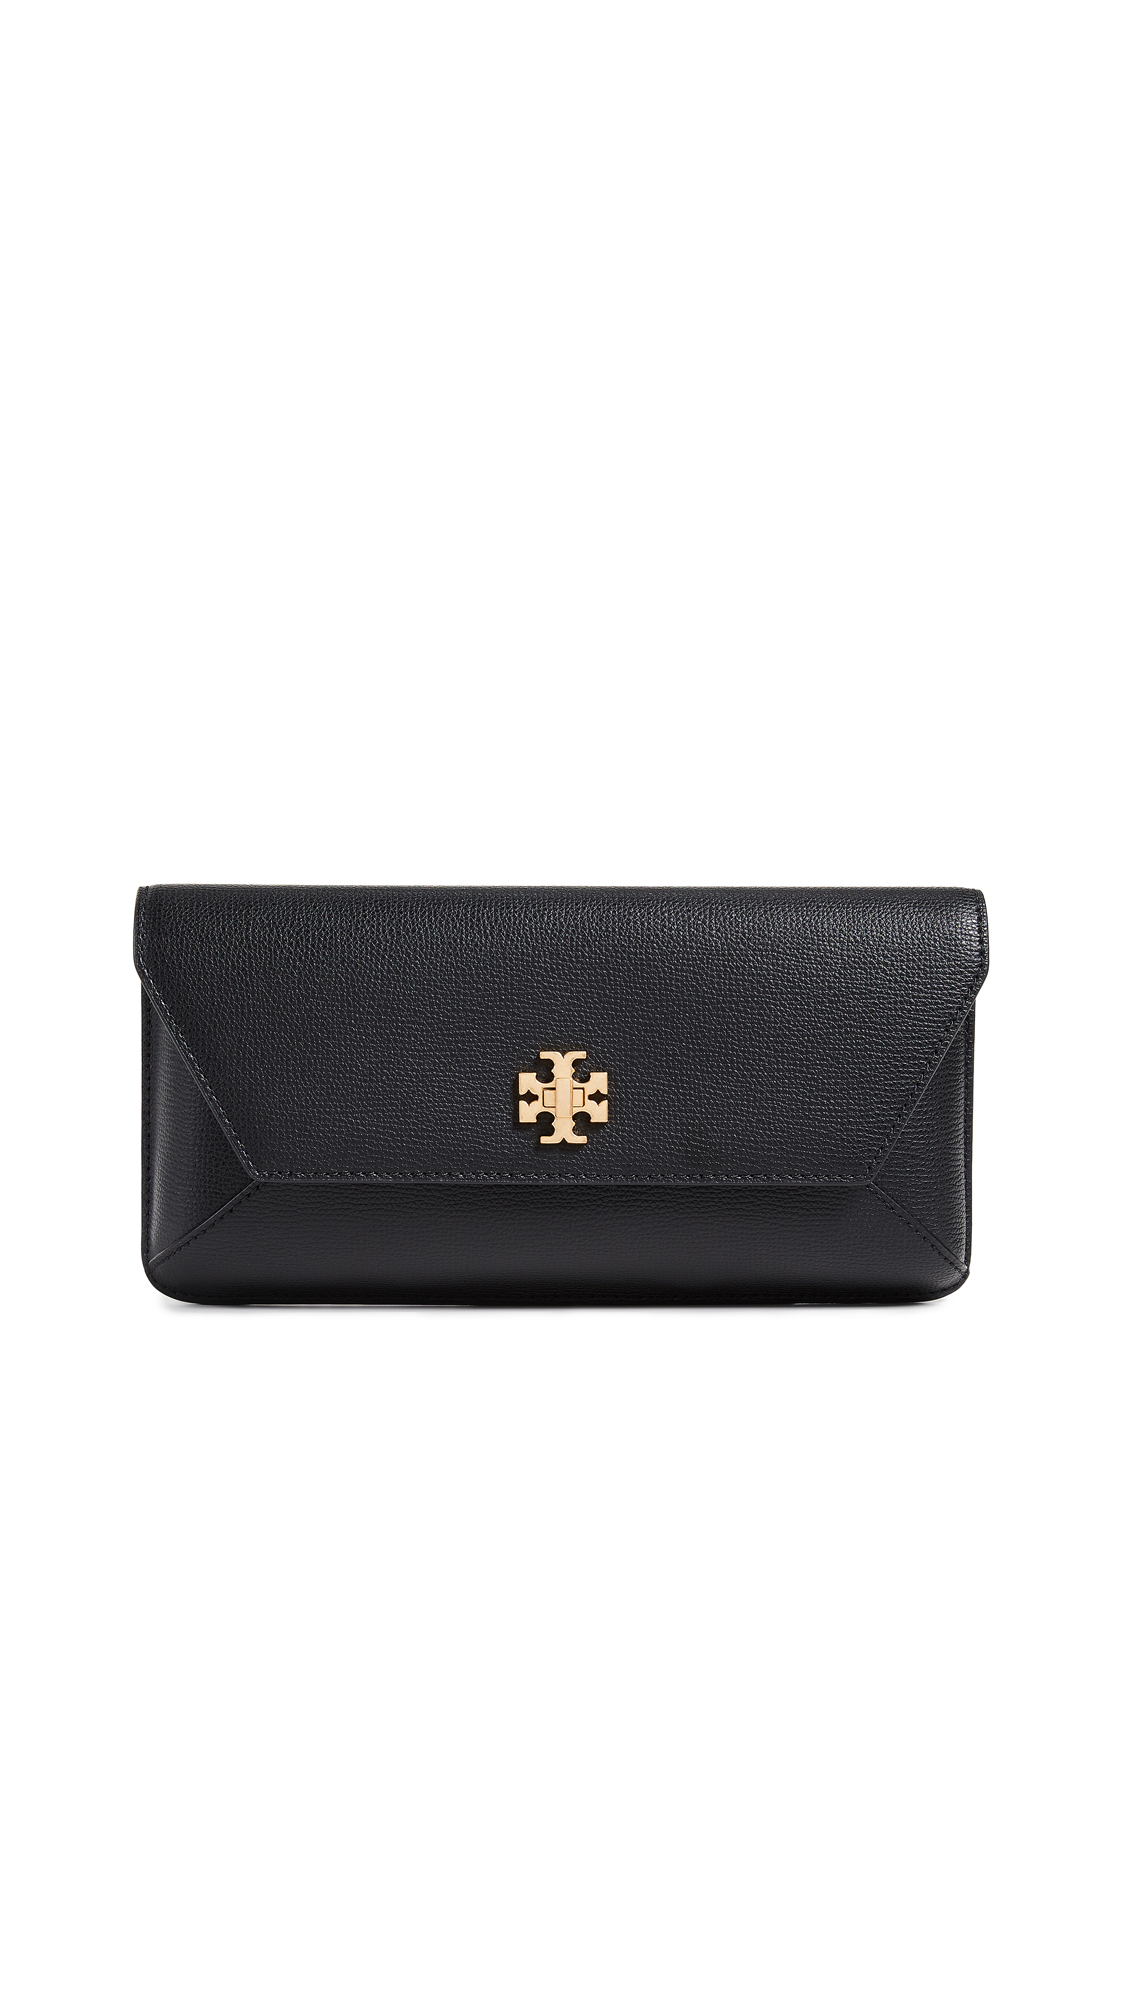 Kira Leather Envelope Clutch - Black